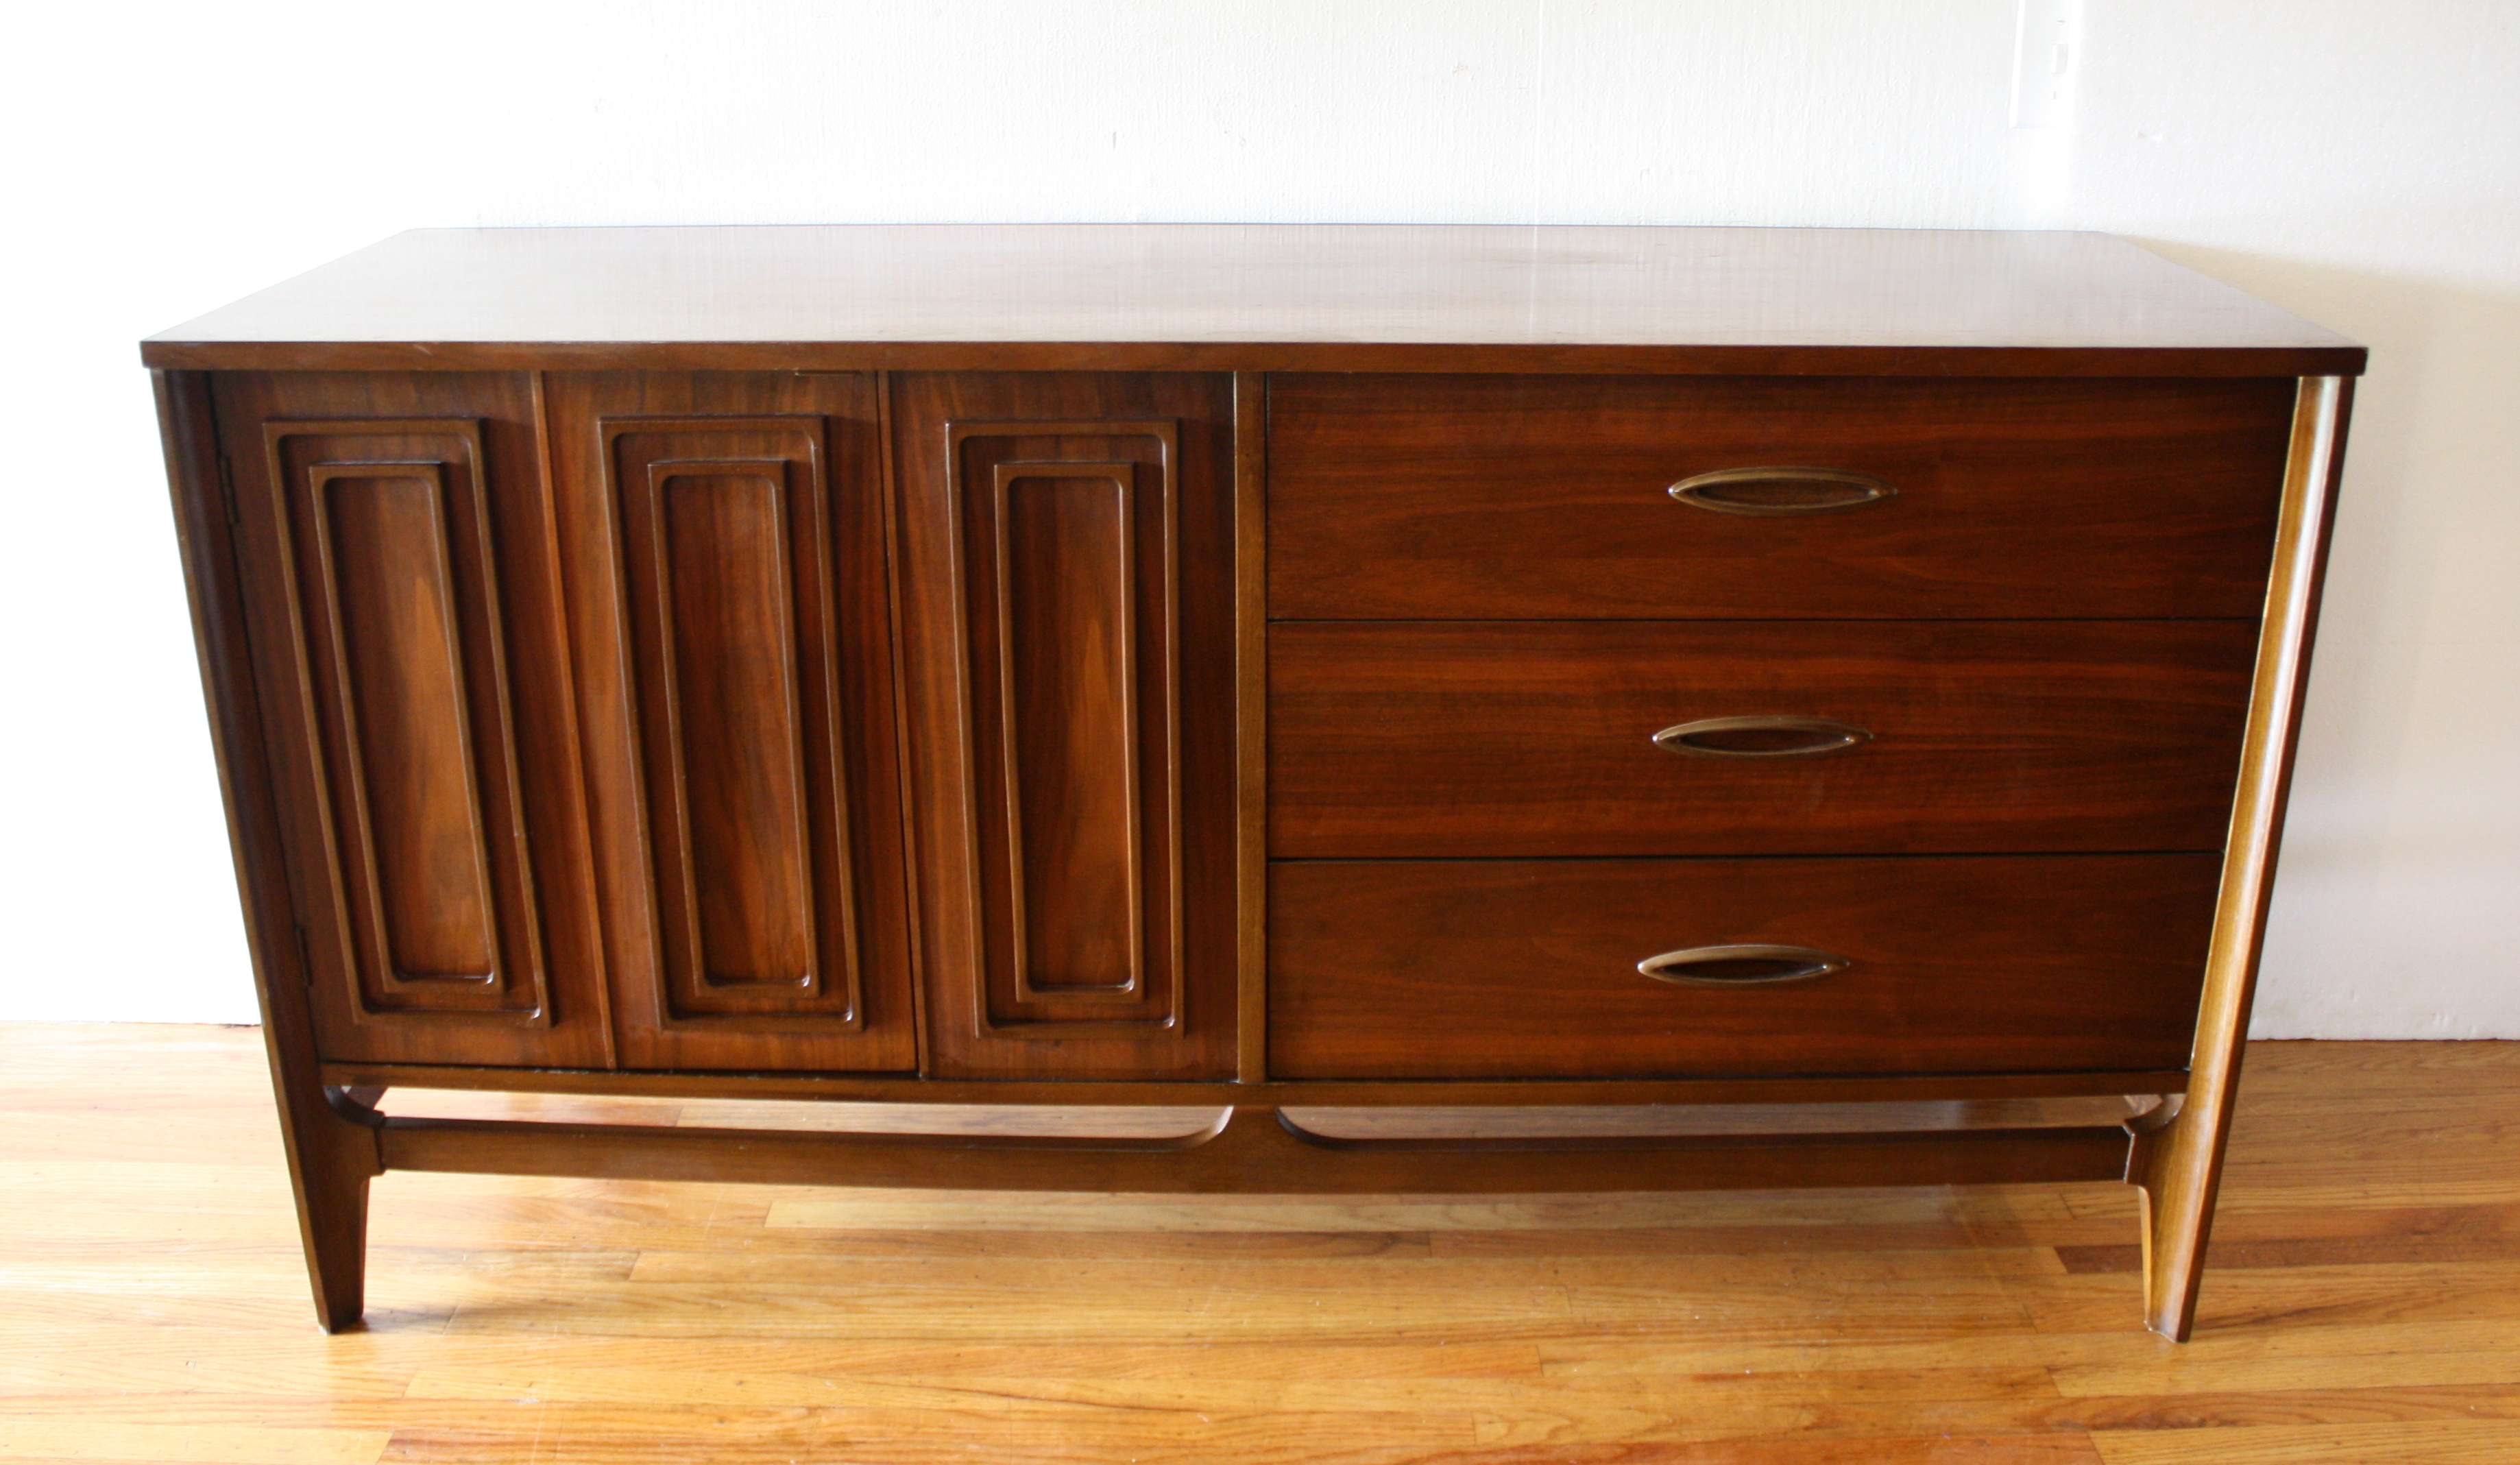 mcm credenza with sculpted handles and doors 1